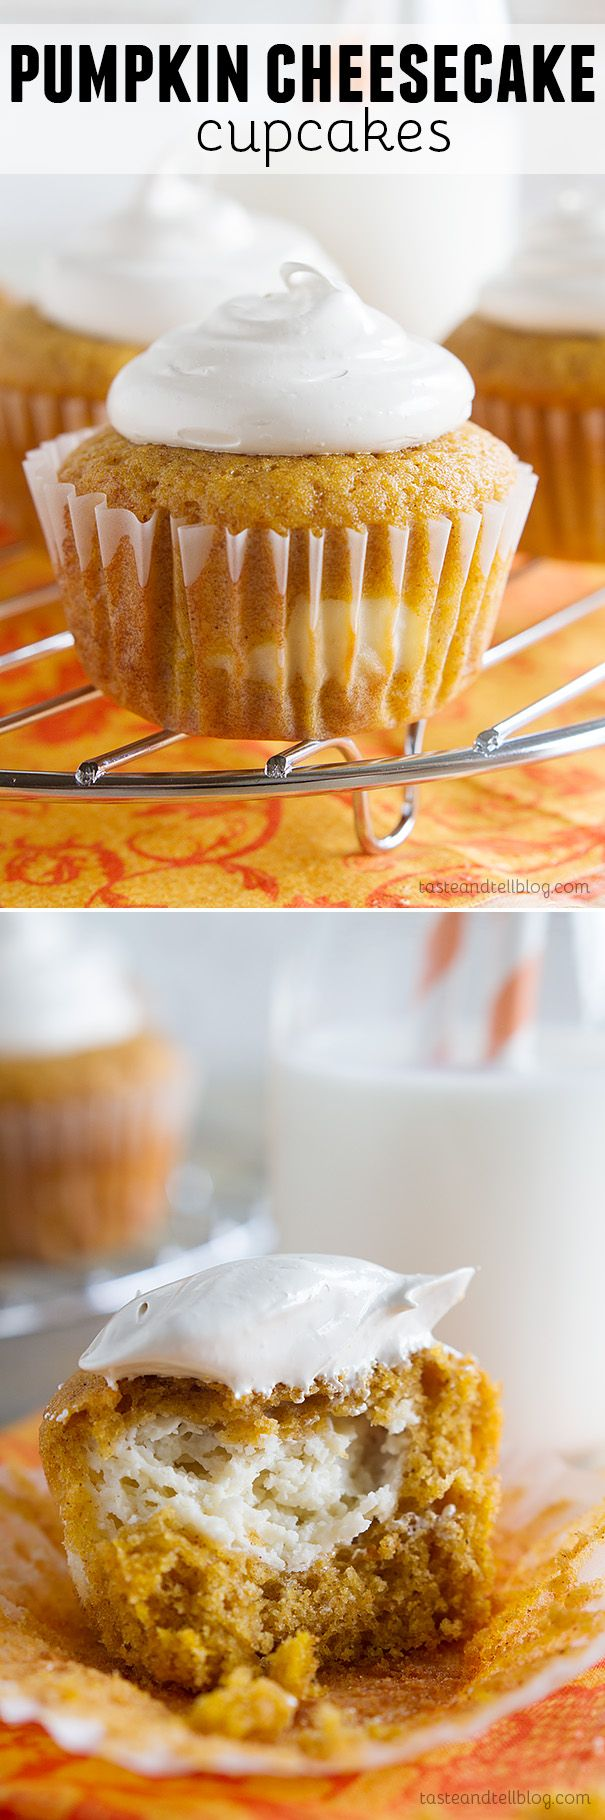 Pumpkin Cheesecake Cupcakes - These pumpkin cheesecake cupcakes have moist pumpkin cupcakes that have a cheesecake center baked in, and then are topped with a light brown sugar marshmallow frosting.